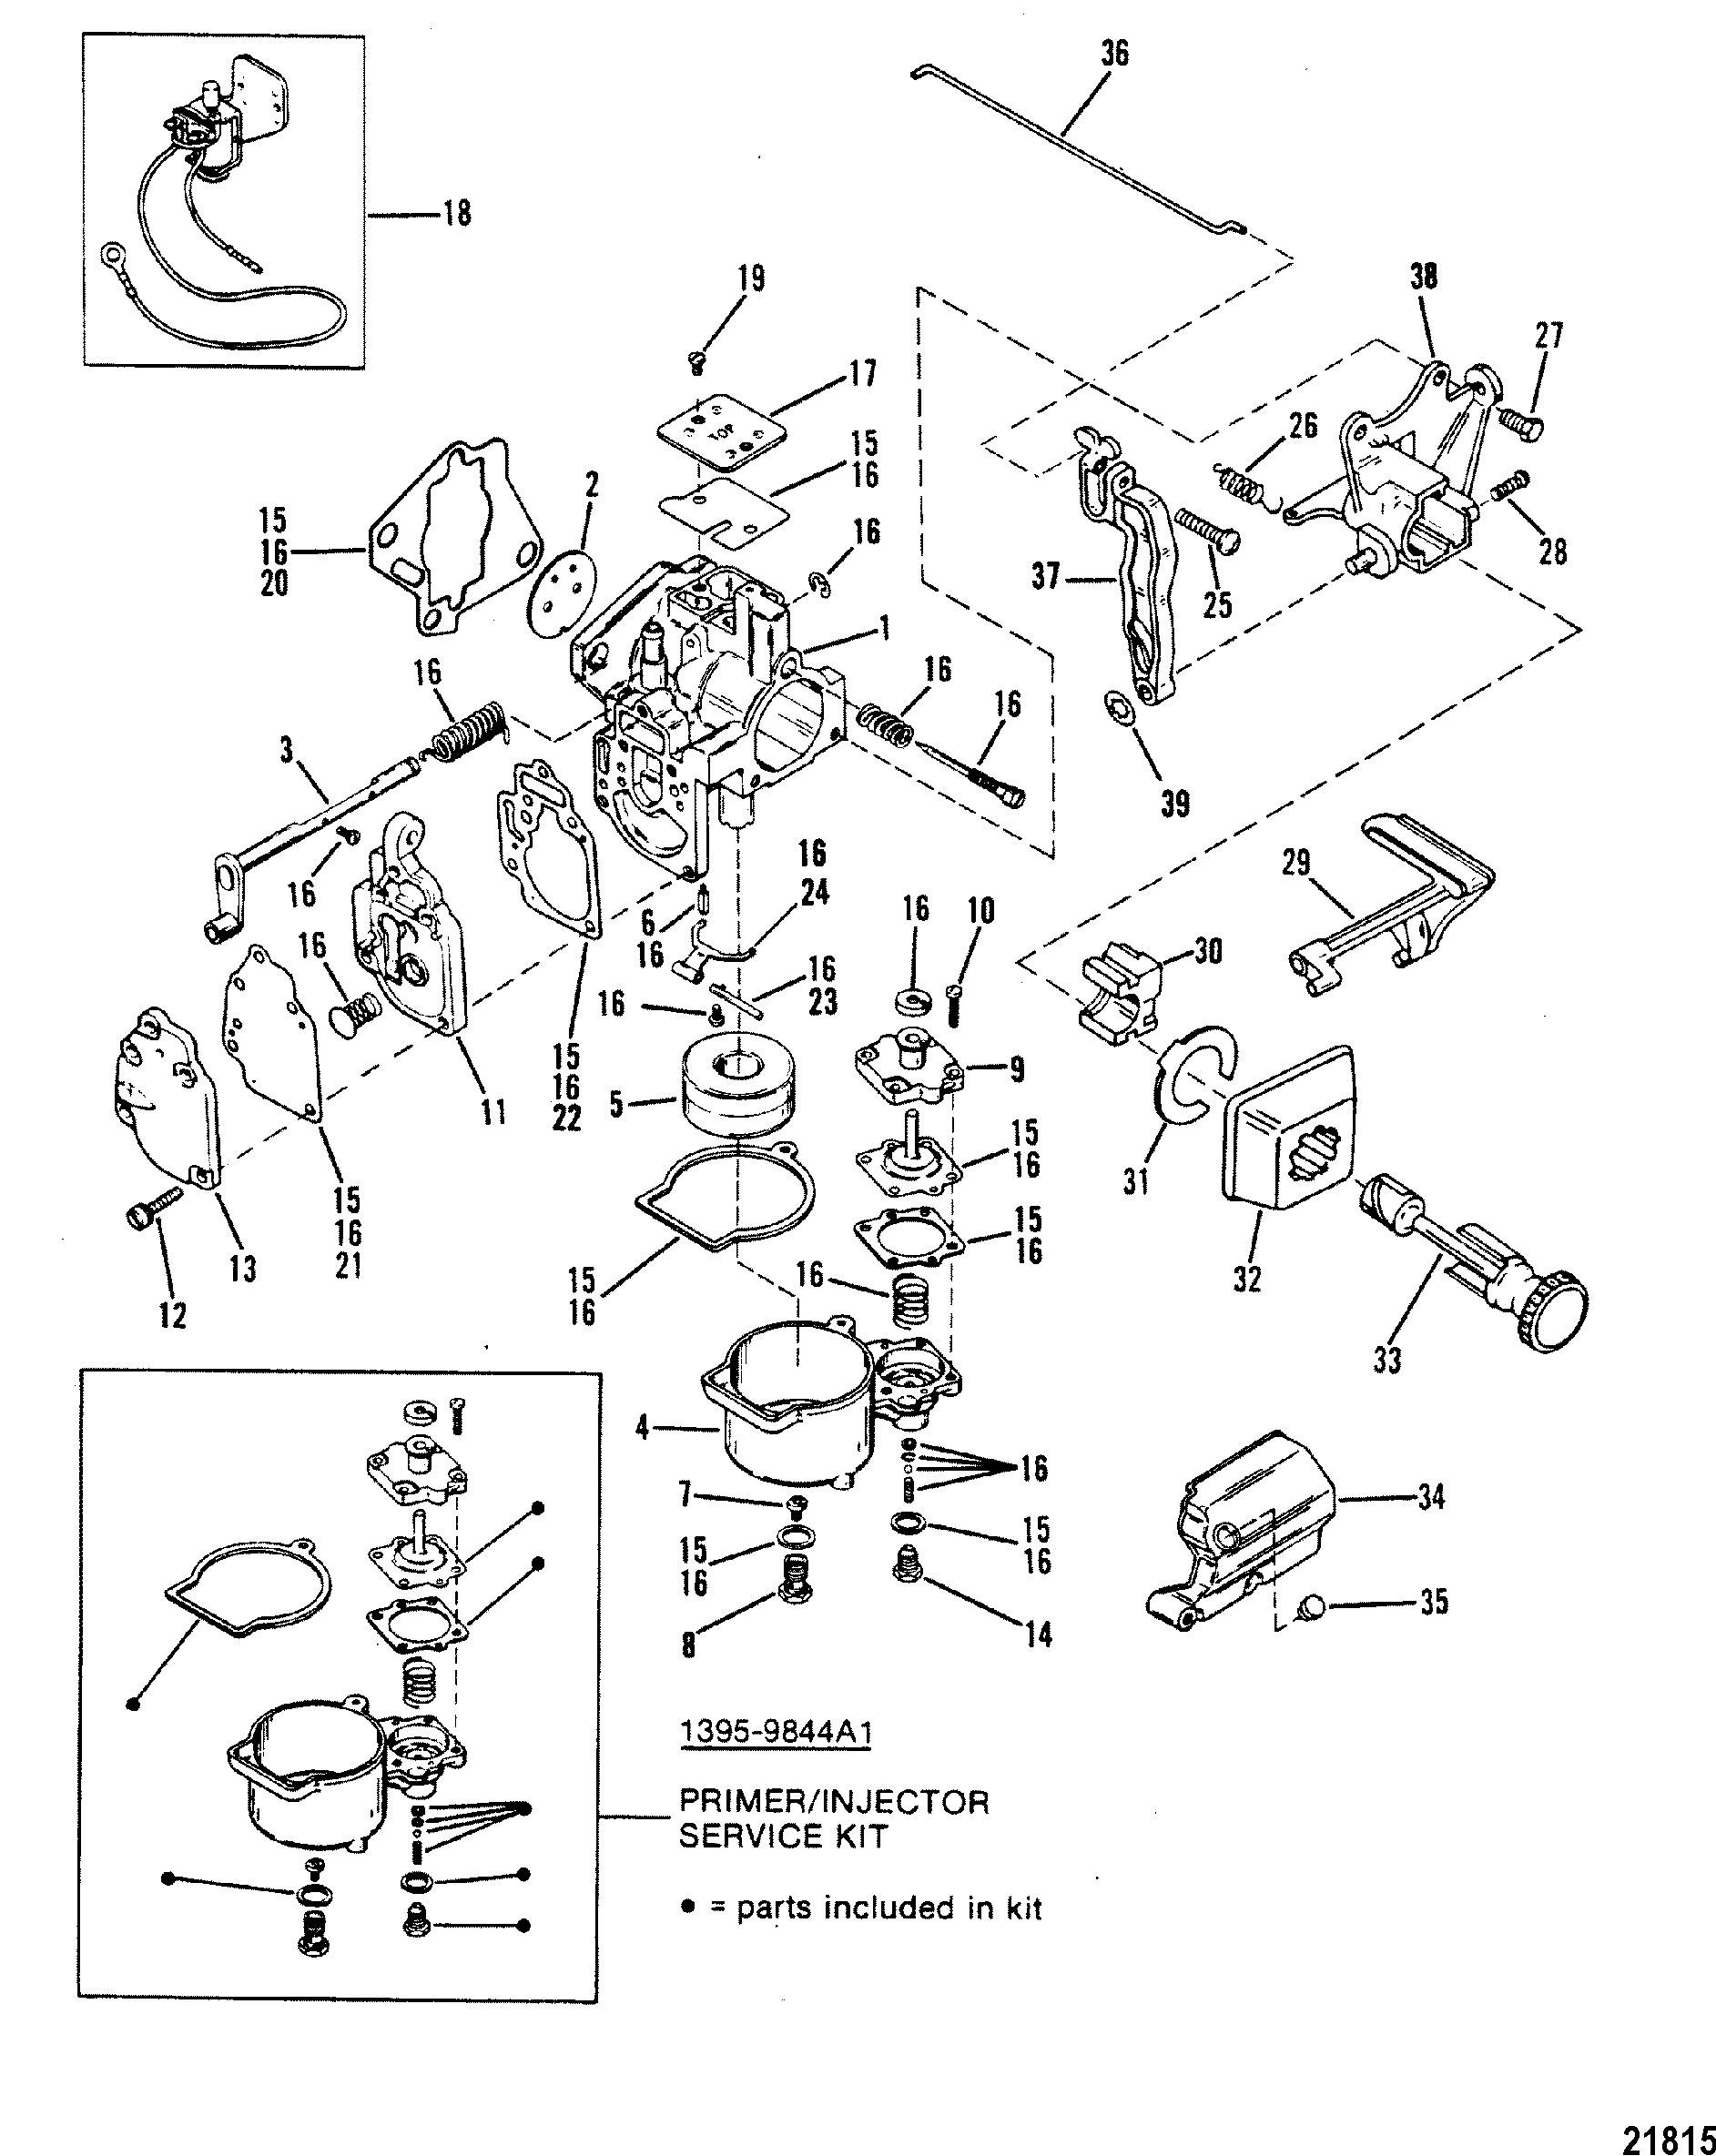 Johnson Evinrude Parts likewise 50 Hp Johnson Outboard Parts Diagram in addition 8504 395 together with Evinrude 55 Hp Wiring Diagram moreover Yamaha Outboard Wiring Harness Diagram. on evinrude outboard tilt trim motor